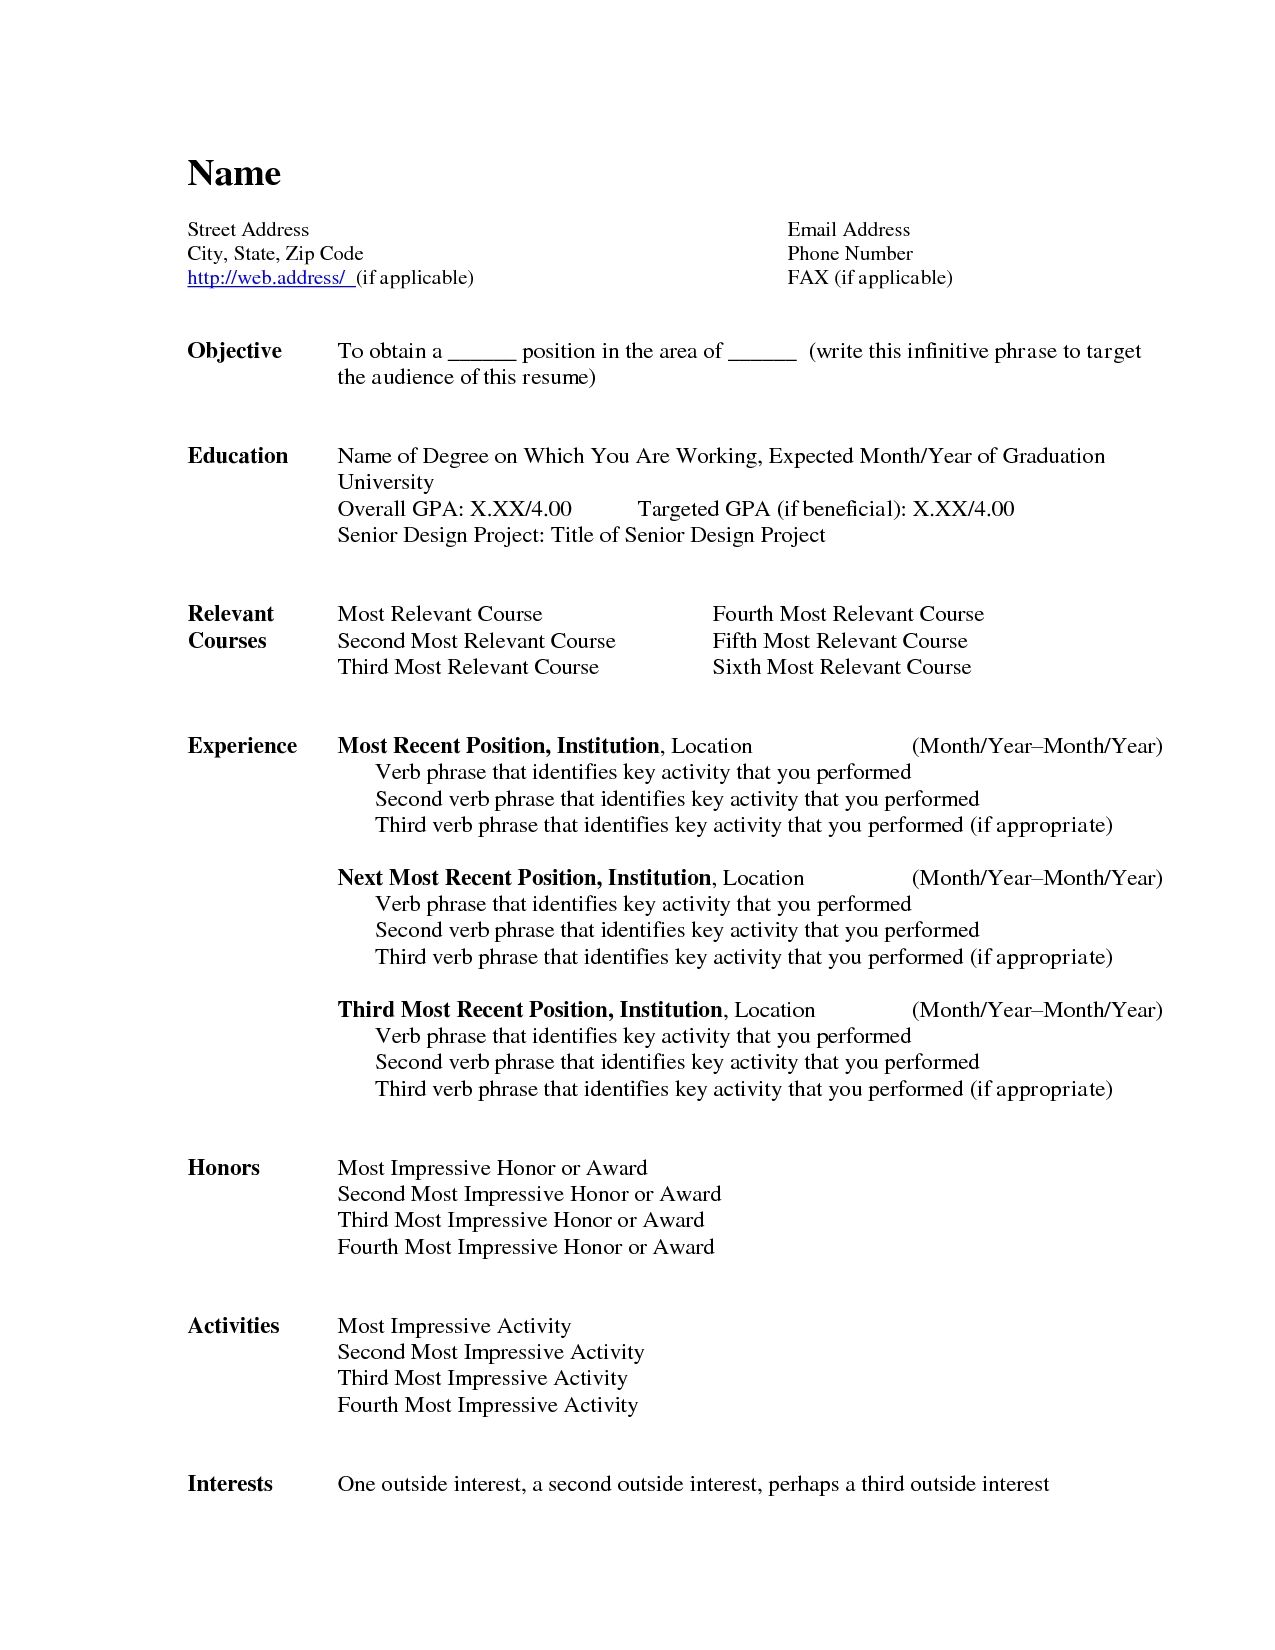 Resume Format In Microsoft Word Photo Ms Word Resume Format Images The Ms Word Resume Format